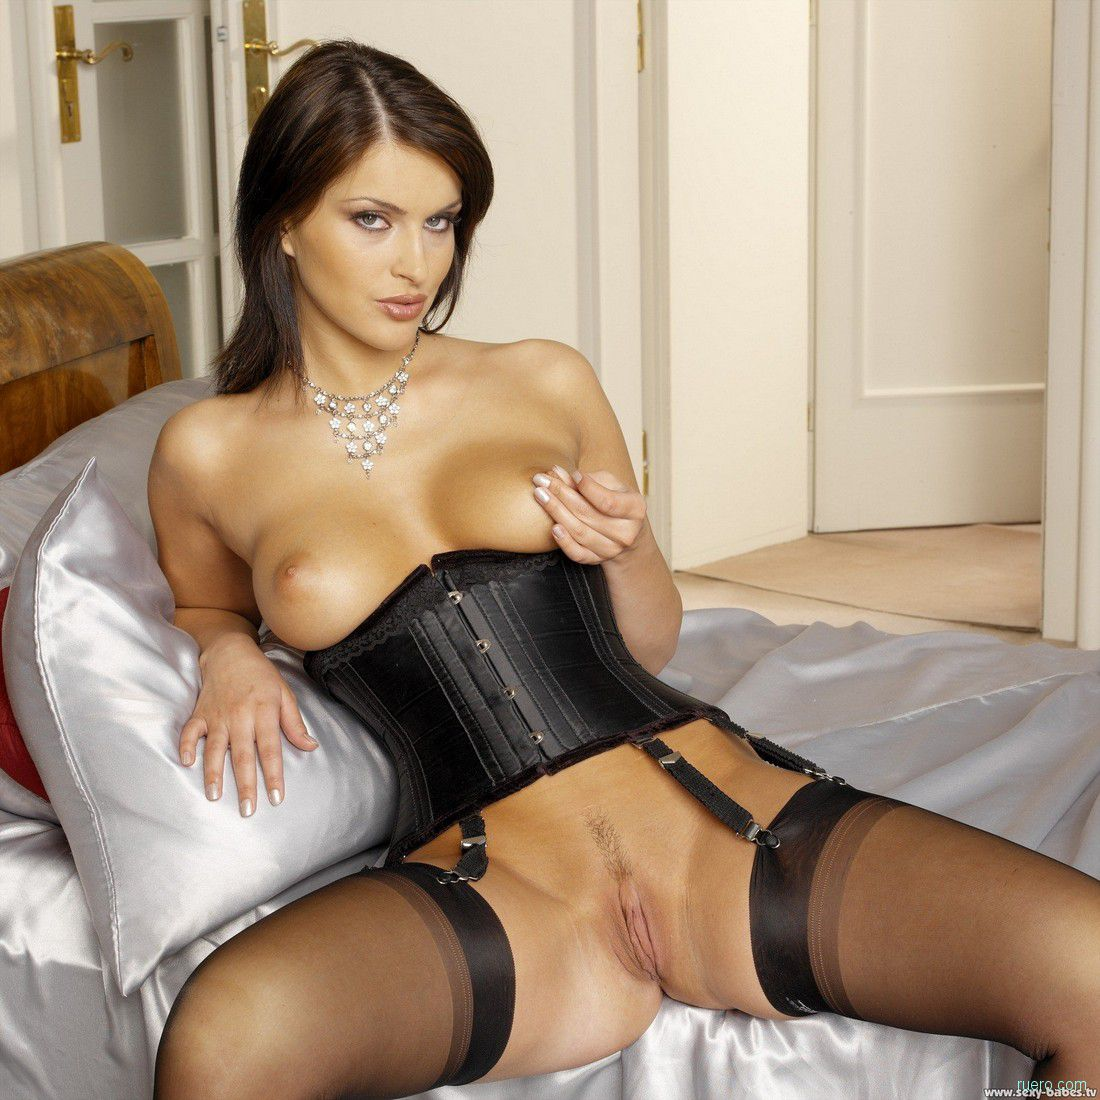 Free asian, corset pictures